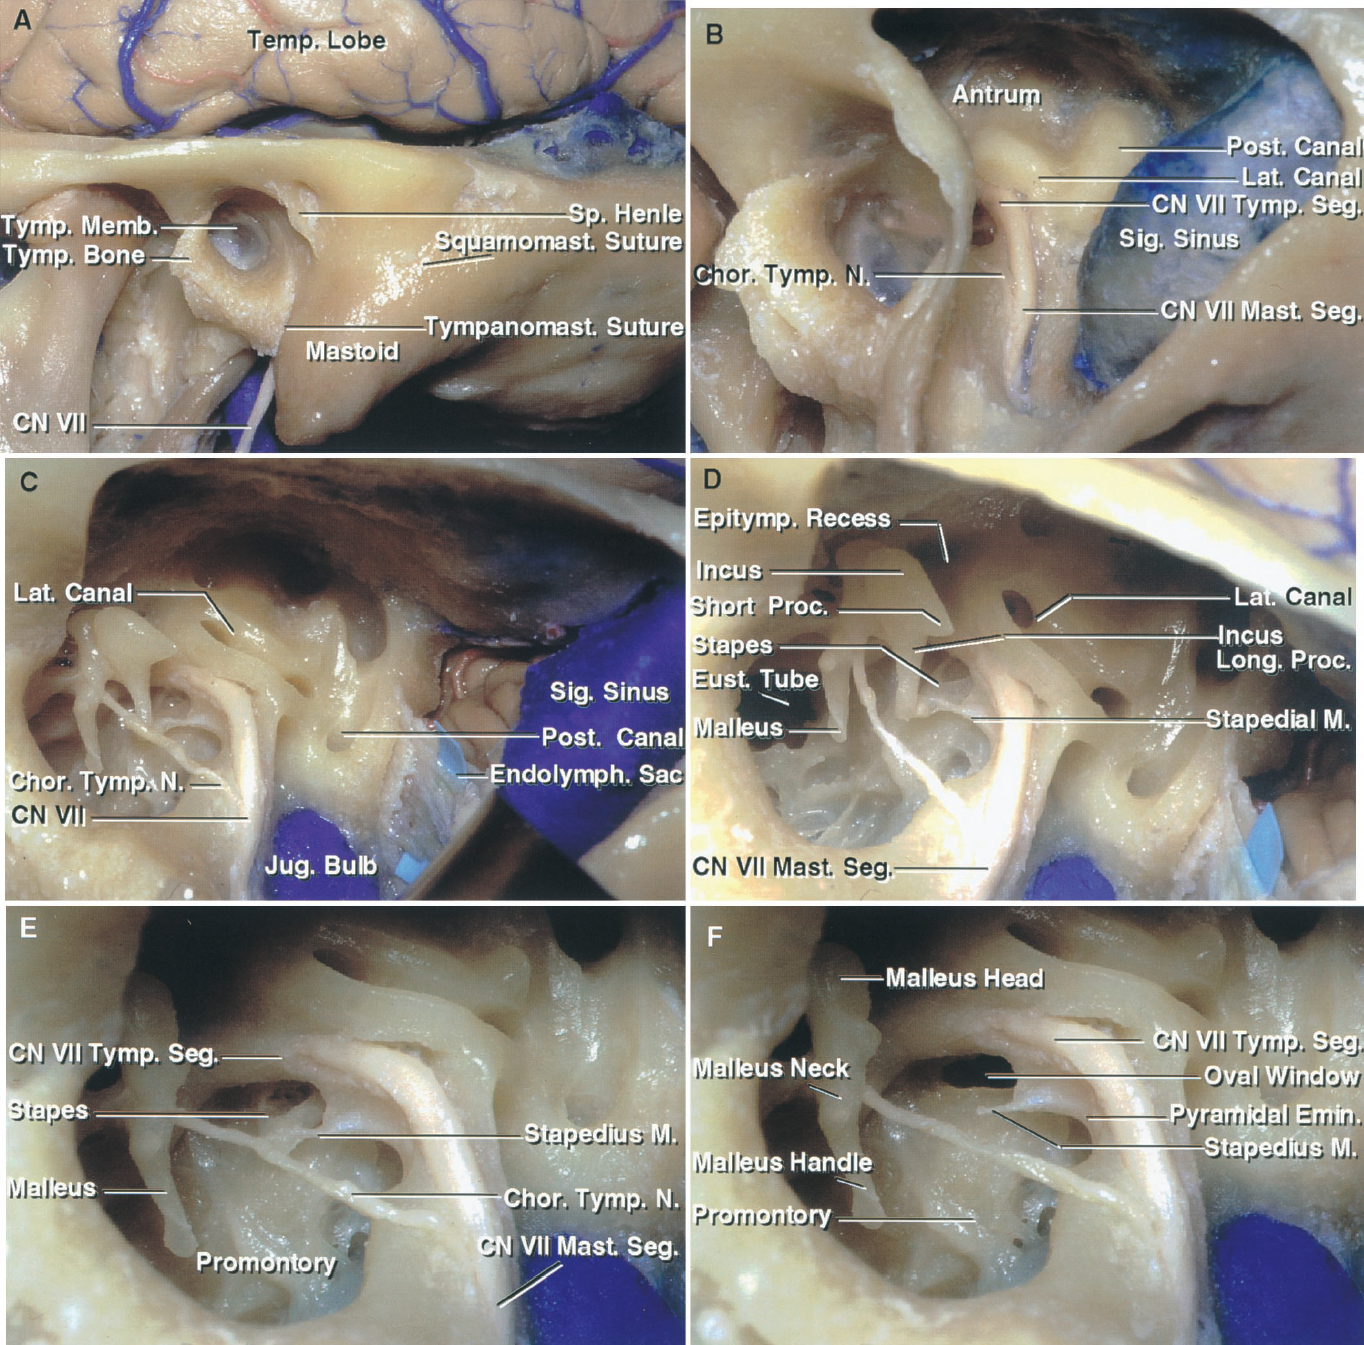 FIGURE 8.4. Tympanic cavity and mastoid antrum. A, the tympanic bone forms the anterior, lower, and part of the posterior wall of the external canal. The facial nerve exits the skull through the stylomastoid foramen, which is located medial to the tympanomastoid suture. The spine of Henley approximates the deep site of the tympanic facial segment and the lateral canal. The mastoid antrum is located between the posterosuperior wall of the external canal and middle fossa floor deep to the depression behind the spine of Henle. B, a mastoidectomy has been completed to expose the capsule of the posterior and lateral canals and the tympanic and mastoid facial segments. C, the posterior and superior wall of the external canal and the tympanic membrane have been removed while preserving the malleus and chorda tympani. The mastoid segment of the facial nerve descends through the facial canal and gives rise to the chorda tympani, which passes upward and forward across the tympanic membrane and malleus neck. D, enlarged view. The head of the incus articulates with the head of the malleus, the short process of the incus points backward toward the facial nerve, and the long process attaches to the stapes, which sits in the oval window. The stapedial muscle passes forward below the tympanic segment of the facial nerve and attaches to the neck of the stapes. E, the incus has been removed to expose the stapes sitting in the oval window. The chorda tympani crosses the neck of the malleus. The promontory is located superficial to the basal turn of the cochlea. The labyrinth and fundus of the internal meatus are located medial to the tympanic cavity. A line directed medially through the skull along the long axis of the external meatus will also approximate the site of the long axis of the internal meatus on the medial side of the promontory and acousticovestibular labyrinth. F, the stapes has been removed from the oval window. The handle of the malleus attaches to the tympanic membran